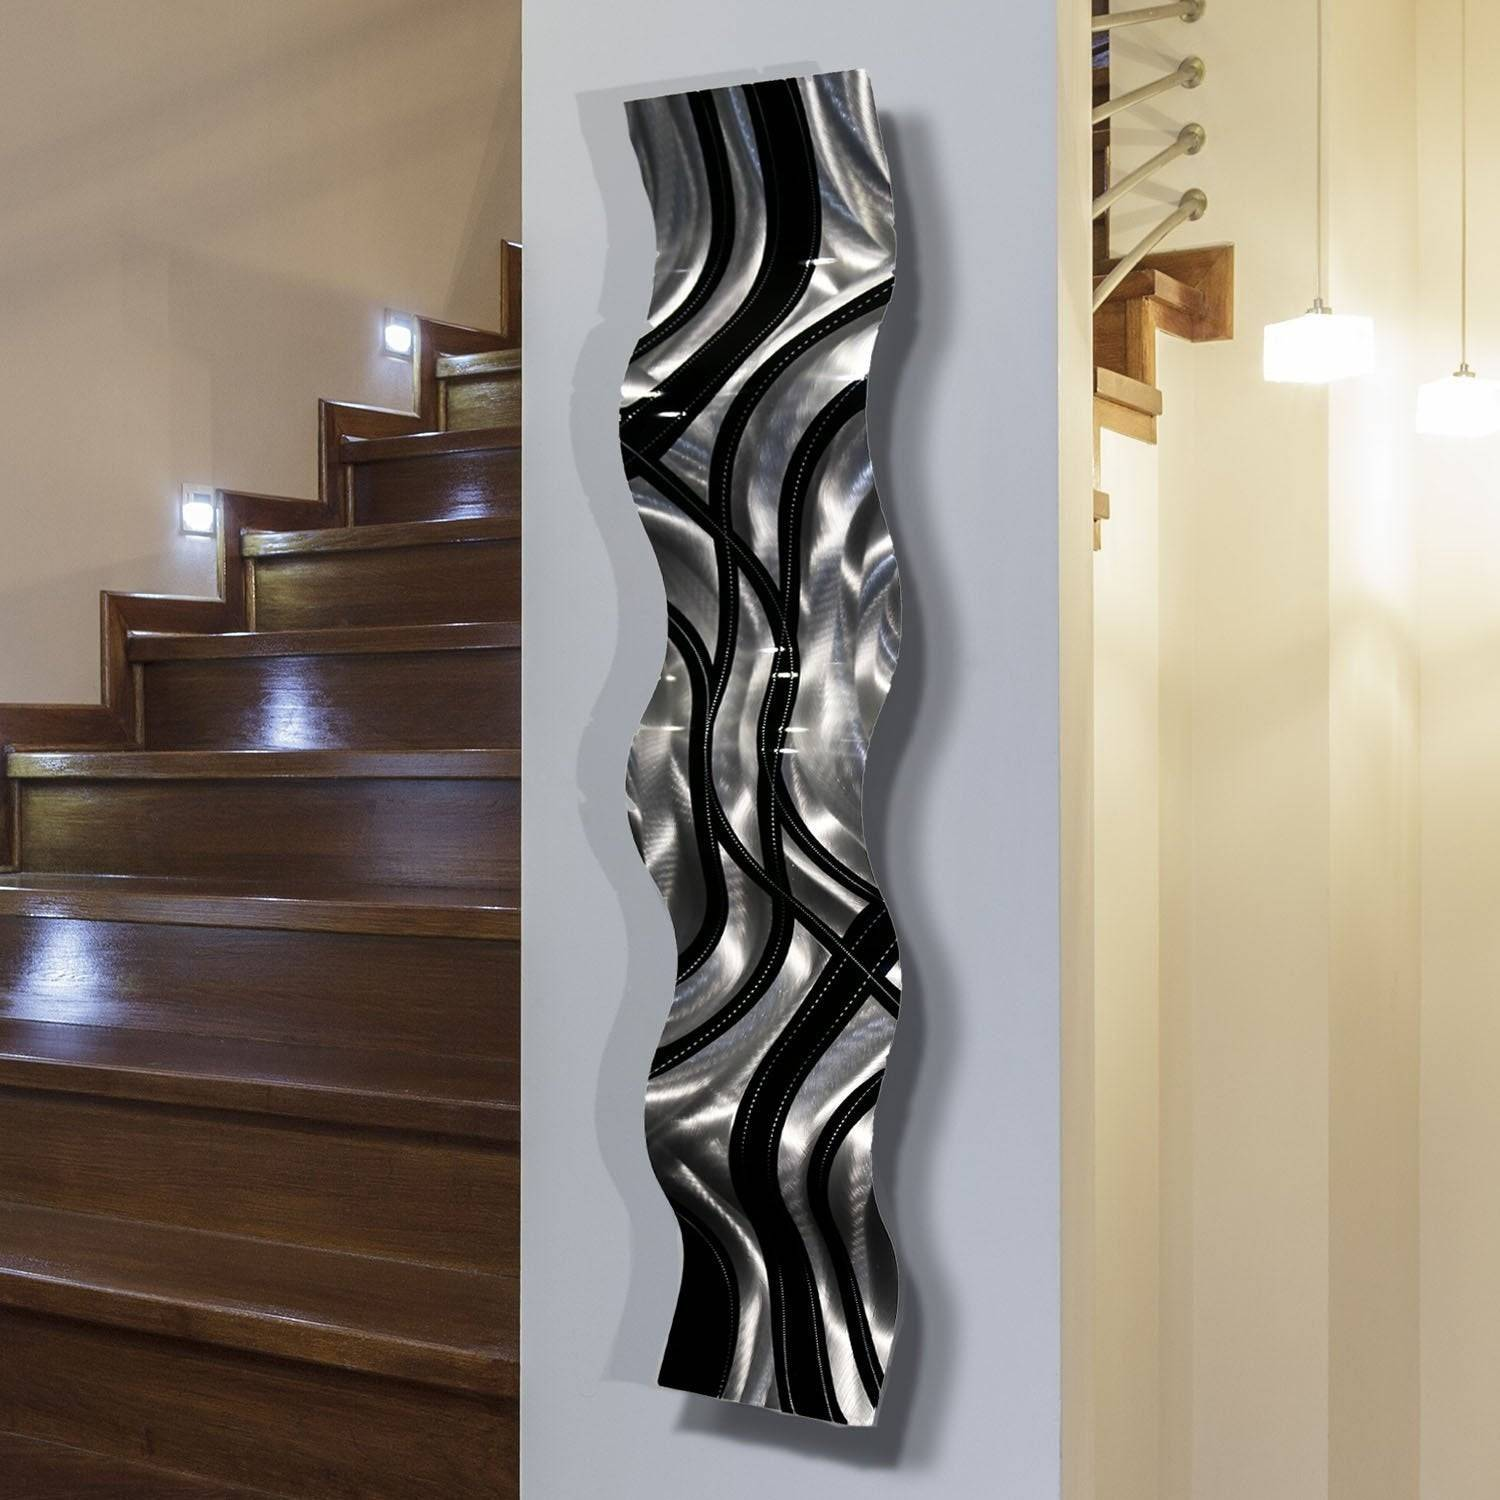 Statements2000 Black Silver Abstract Metal Wall Art Accent Sculpture Decor by Jon Allen Crossroads Wave